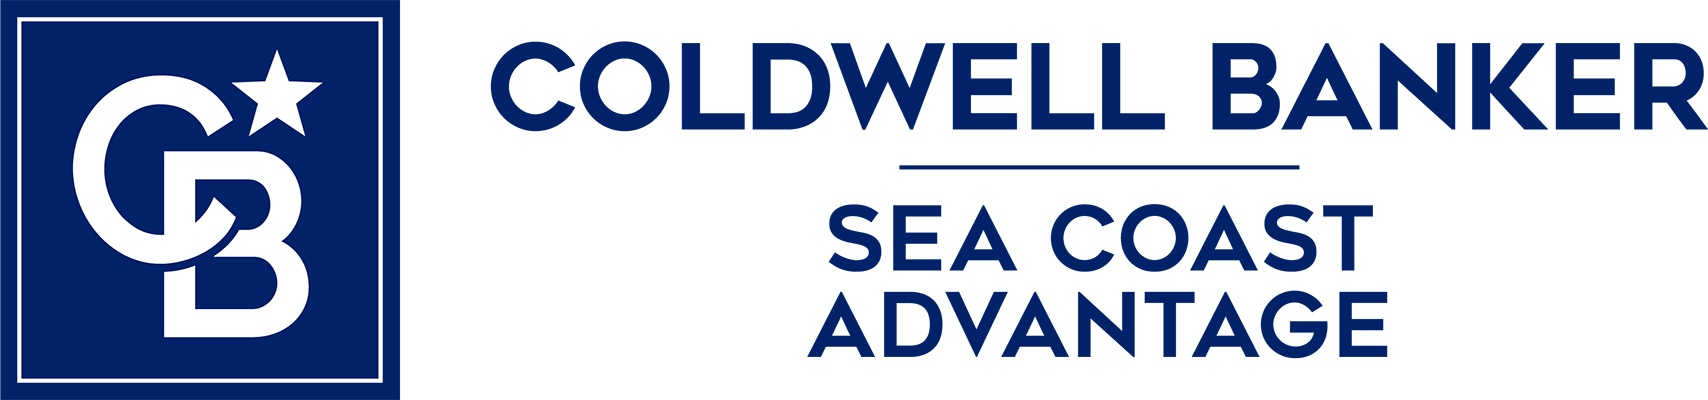 Salena Giglio - Coldwell Banker Sea Coast Advantage Realty